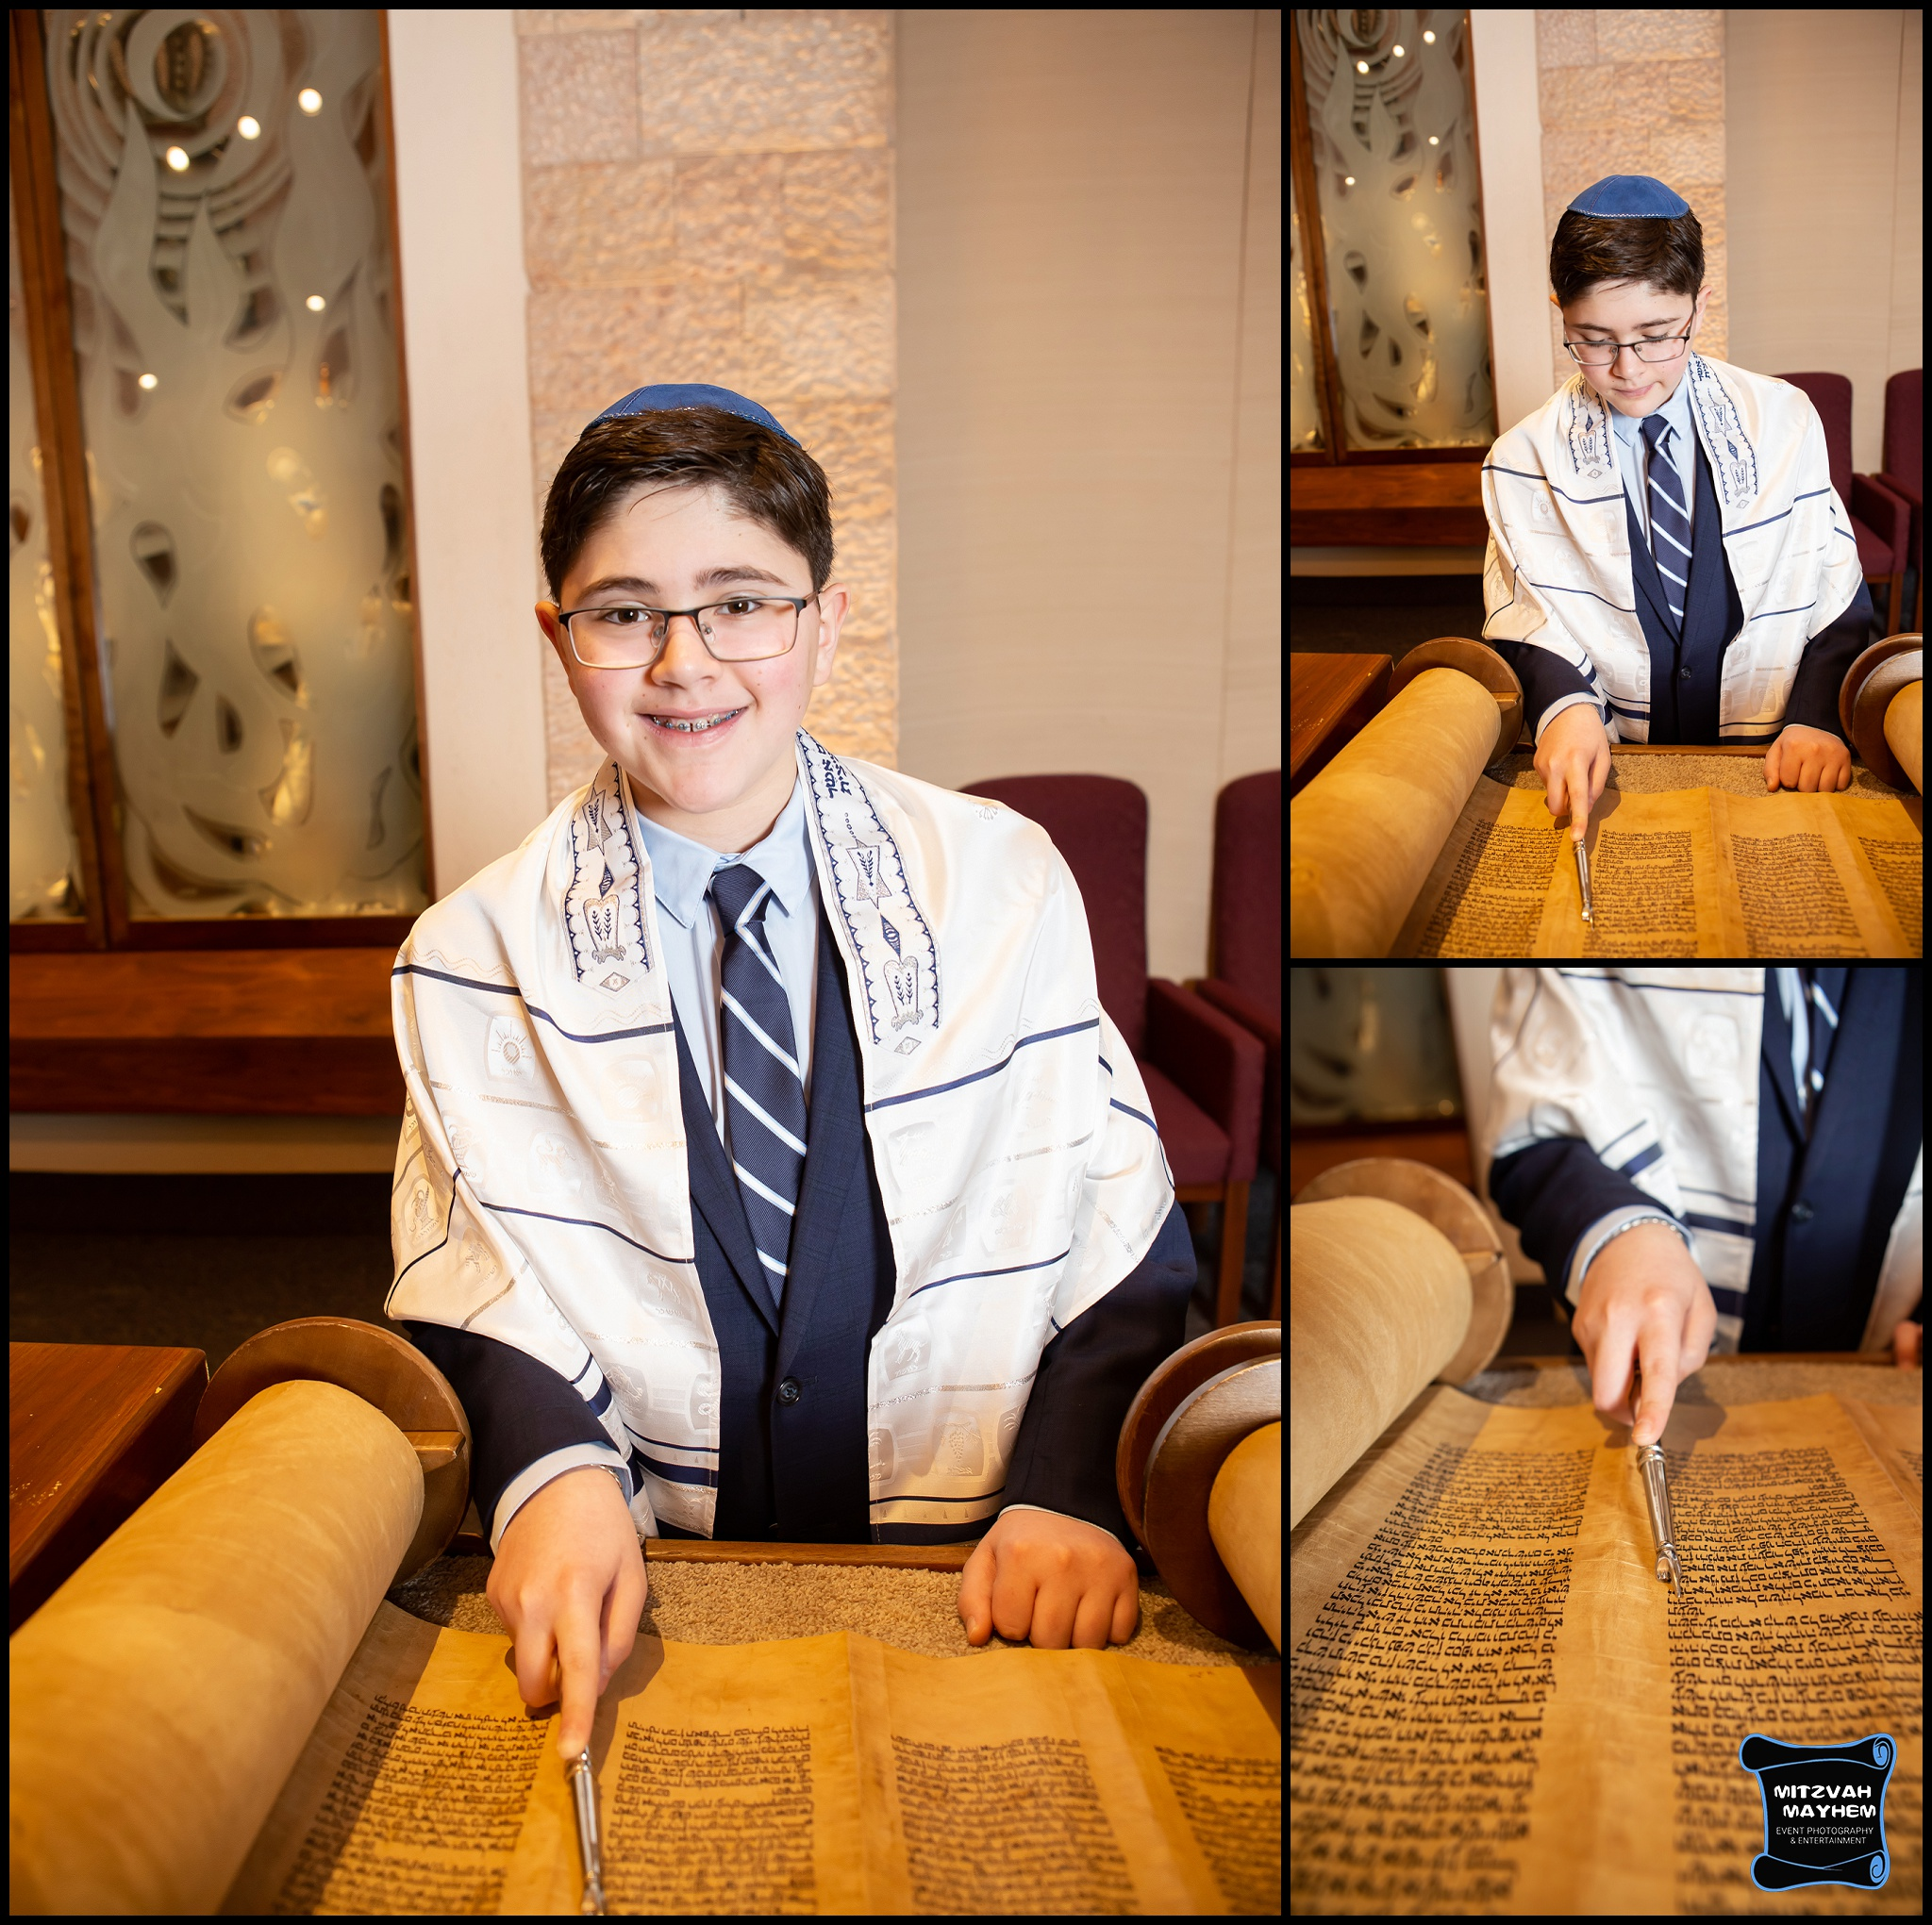 nj-mitzvah-photographer-jacques-caterers-6.JPG